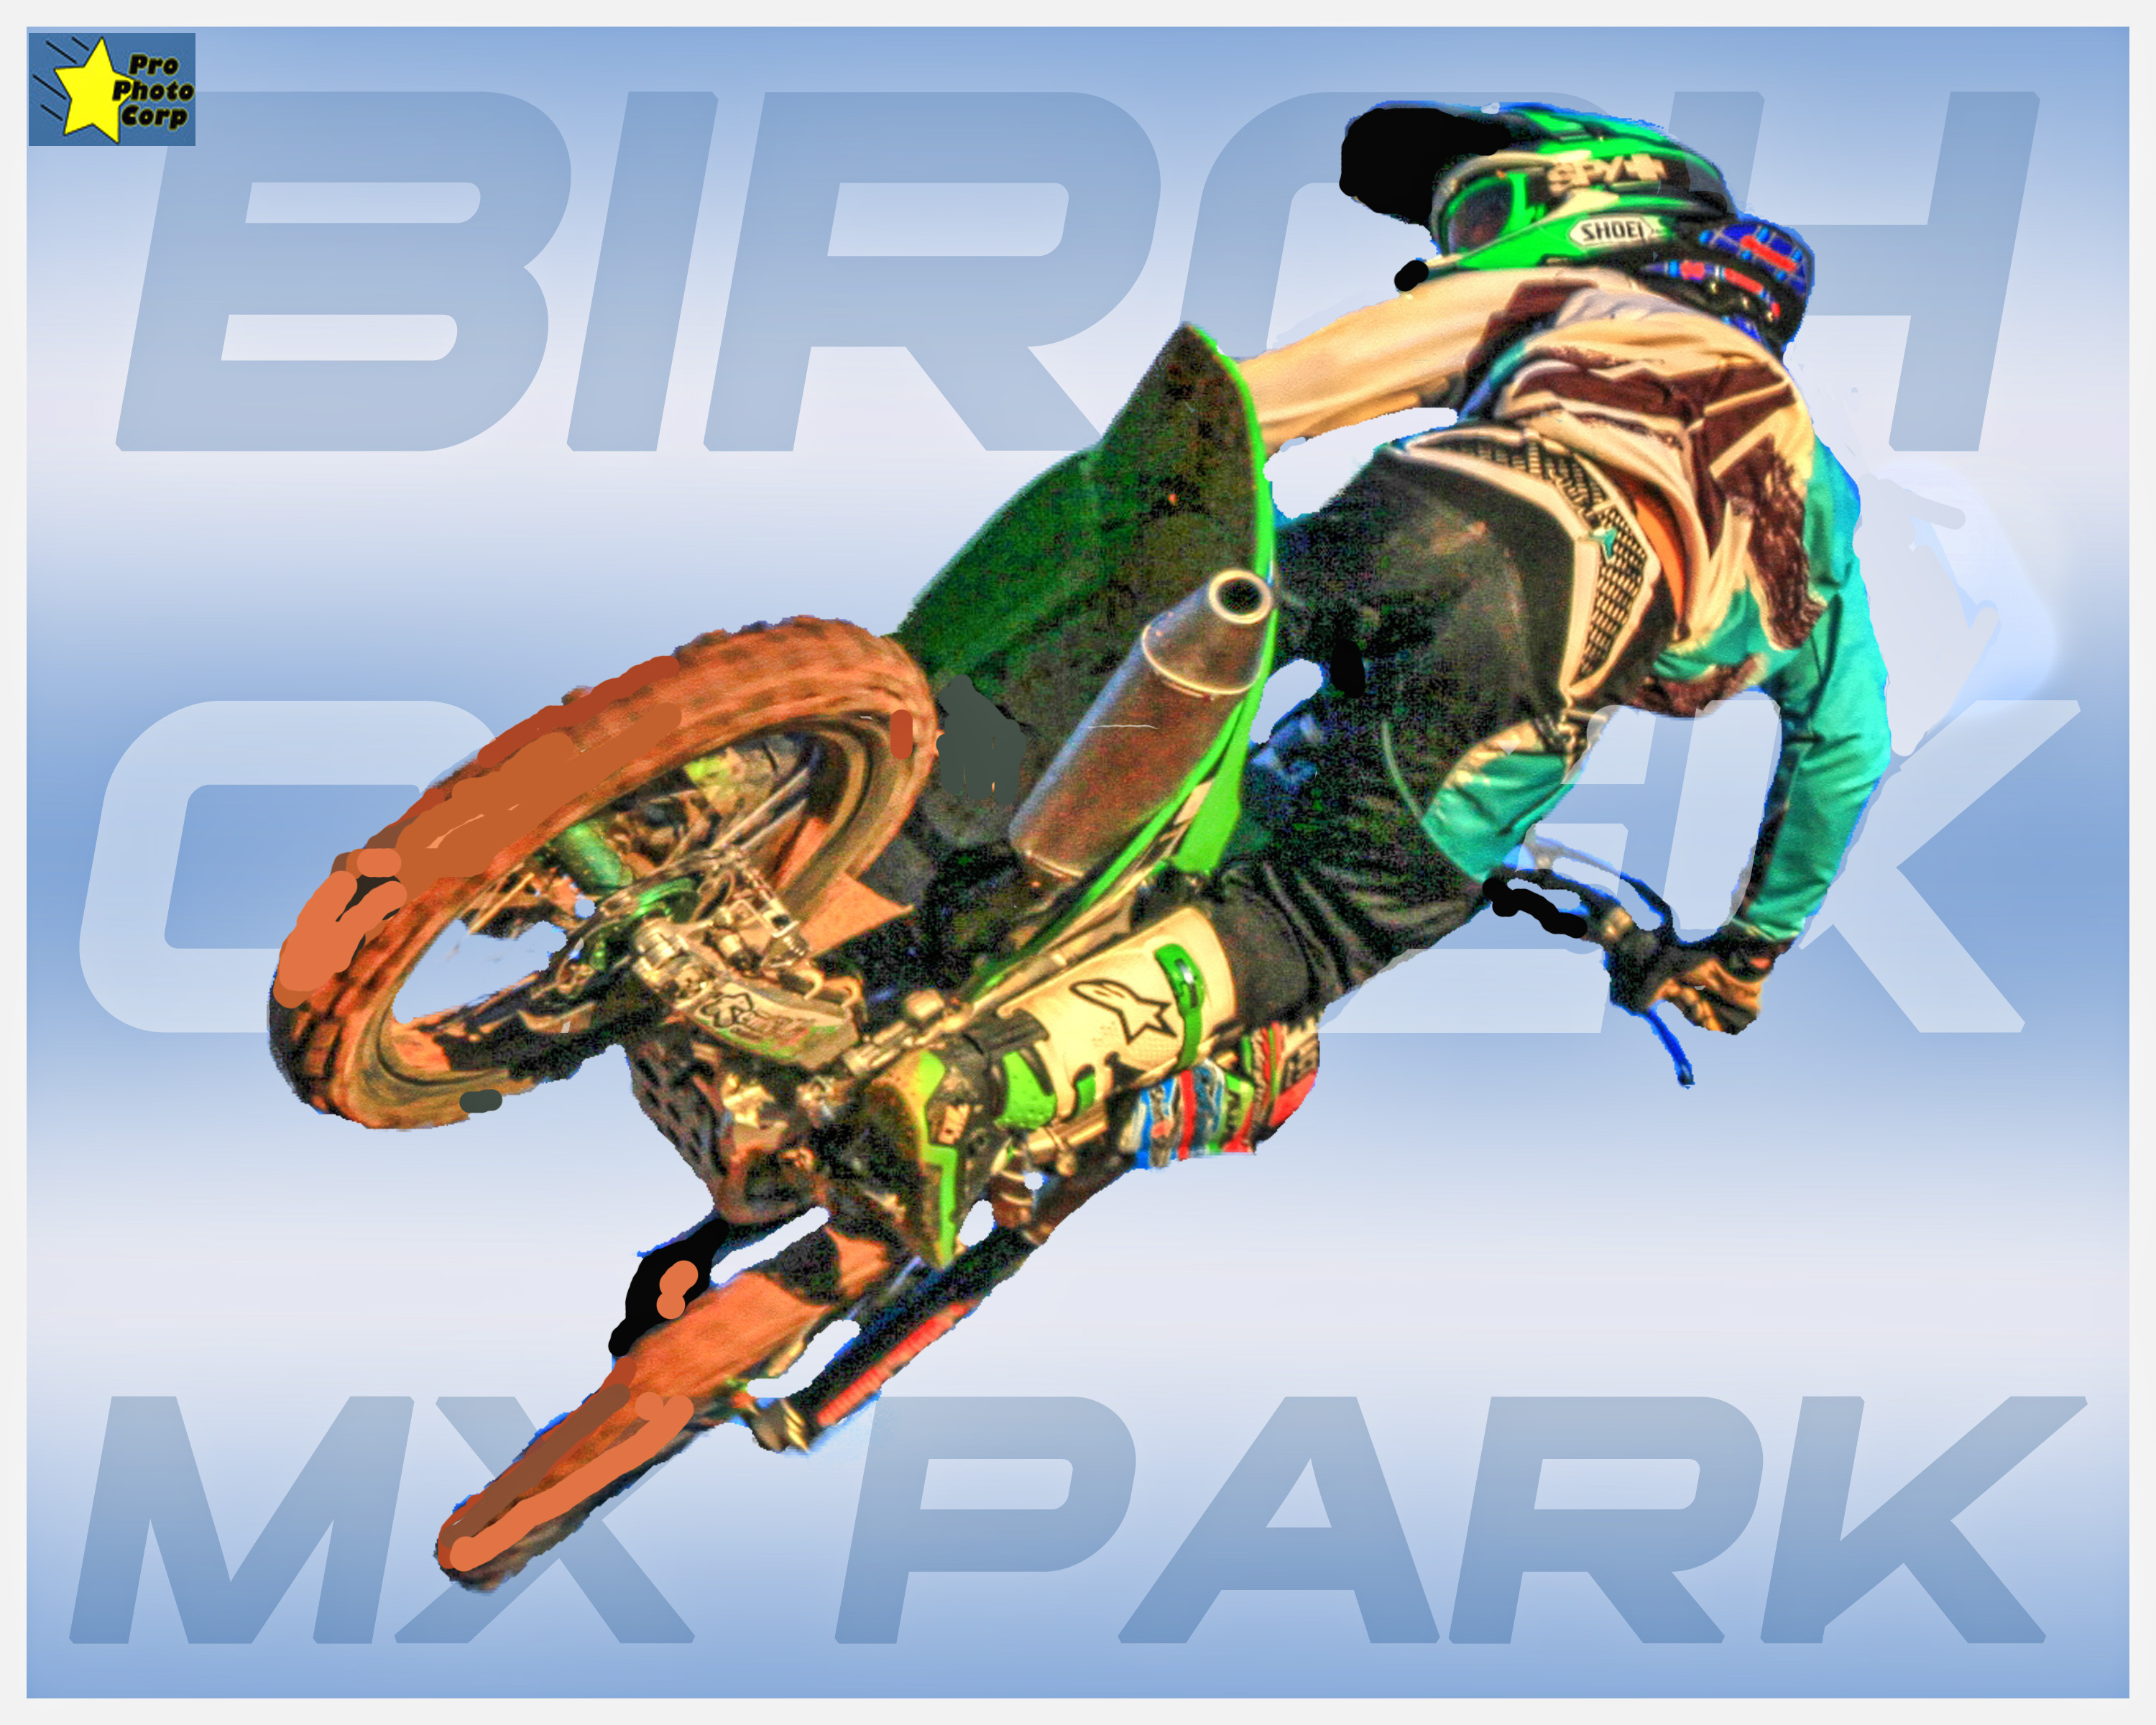 Birch Creek MX Park poster